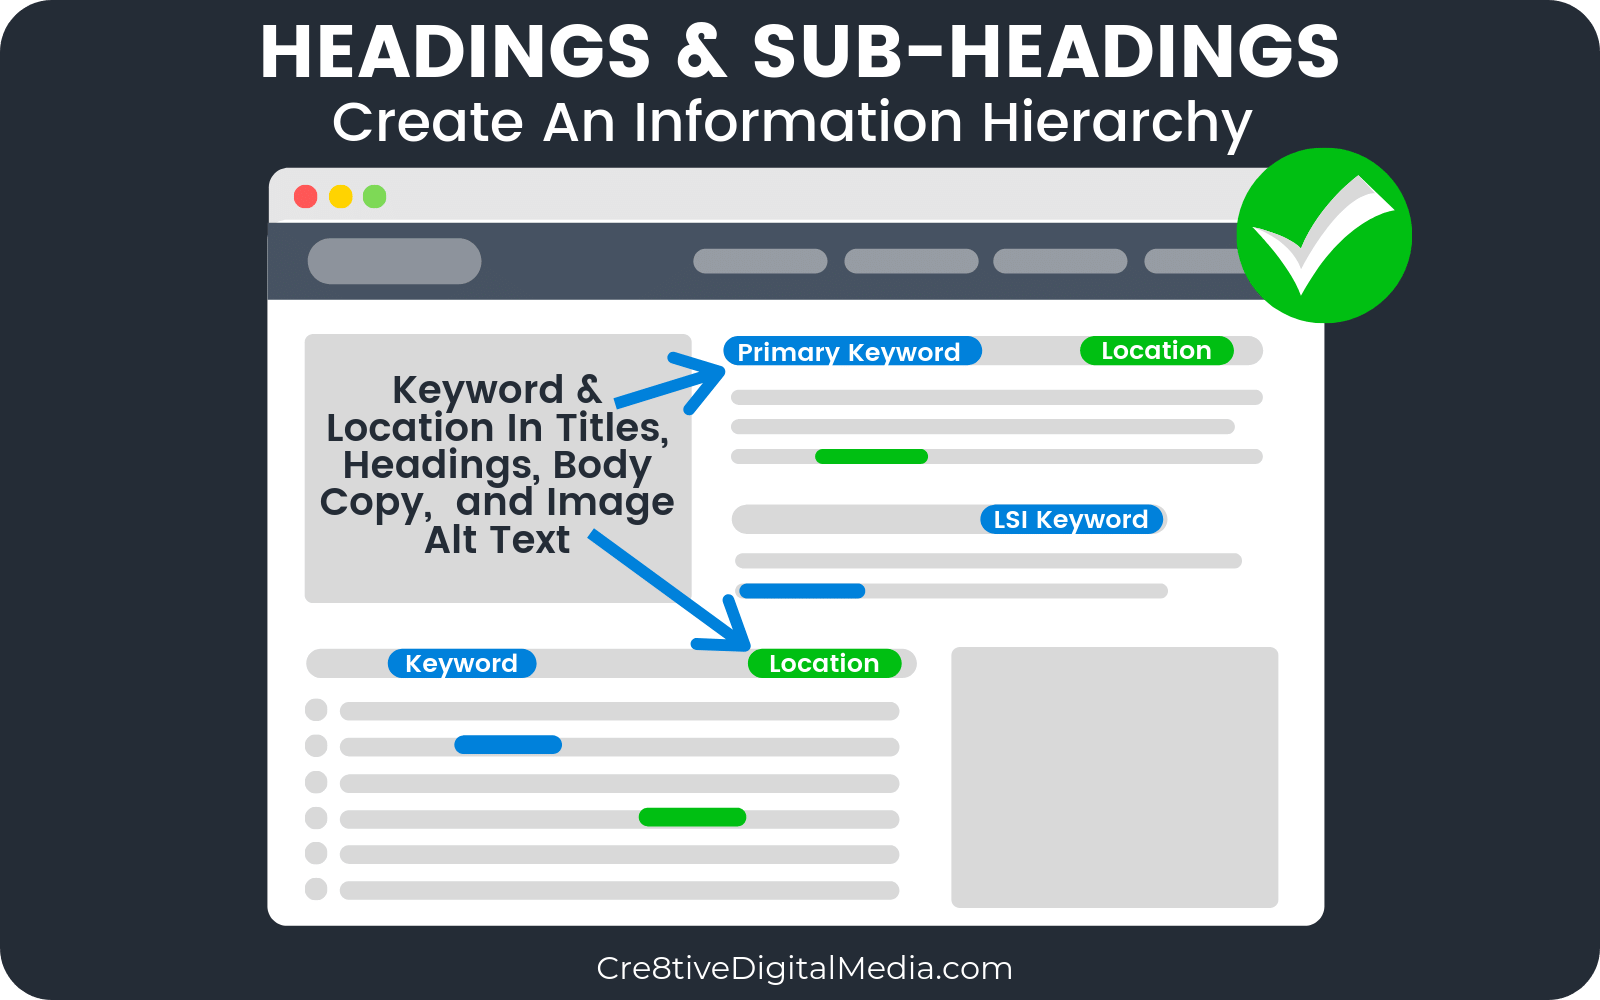 Local Keyword Optimized Headings & Sub-Headings